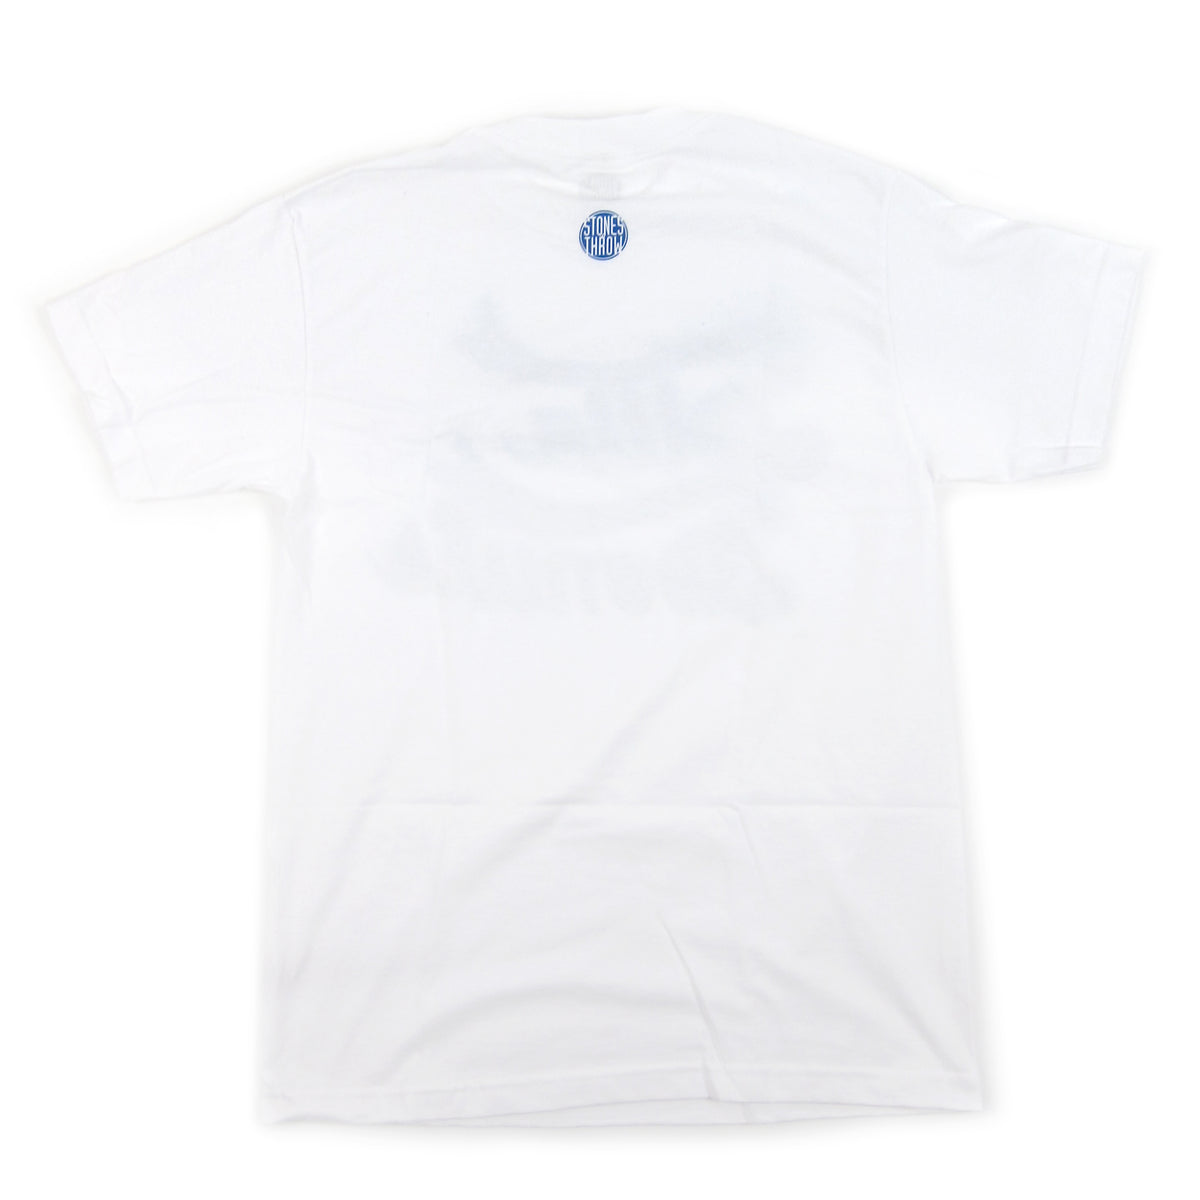 Stones Throw: Dilla Donuts Stencil Shirt - White / Blue